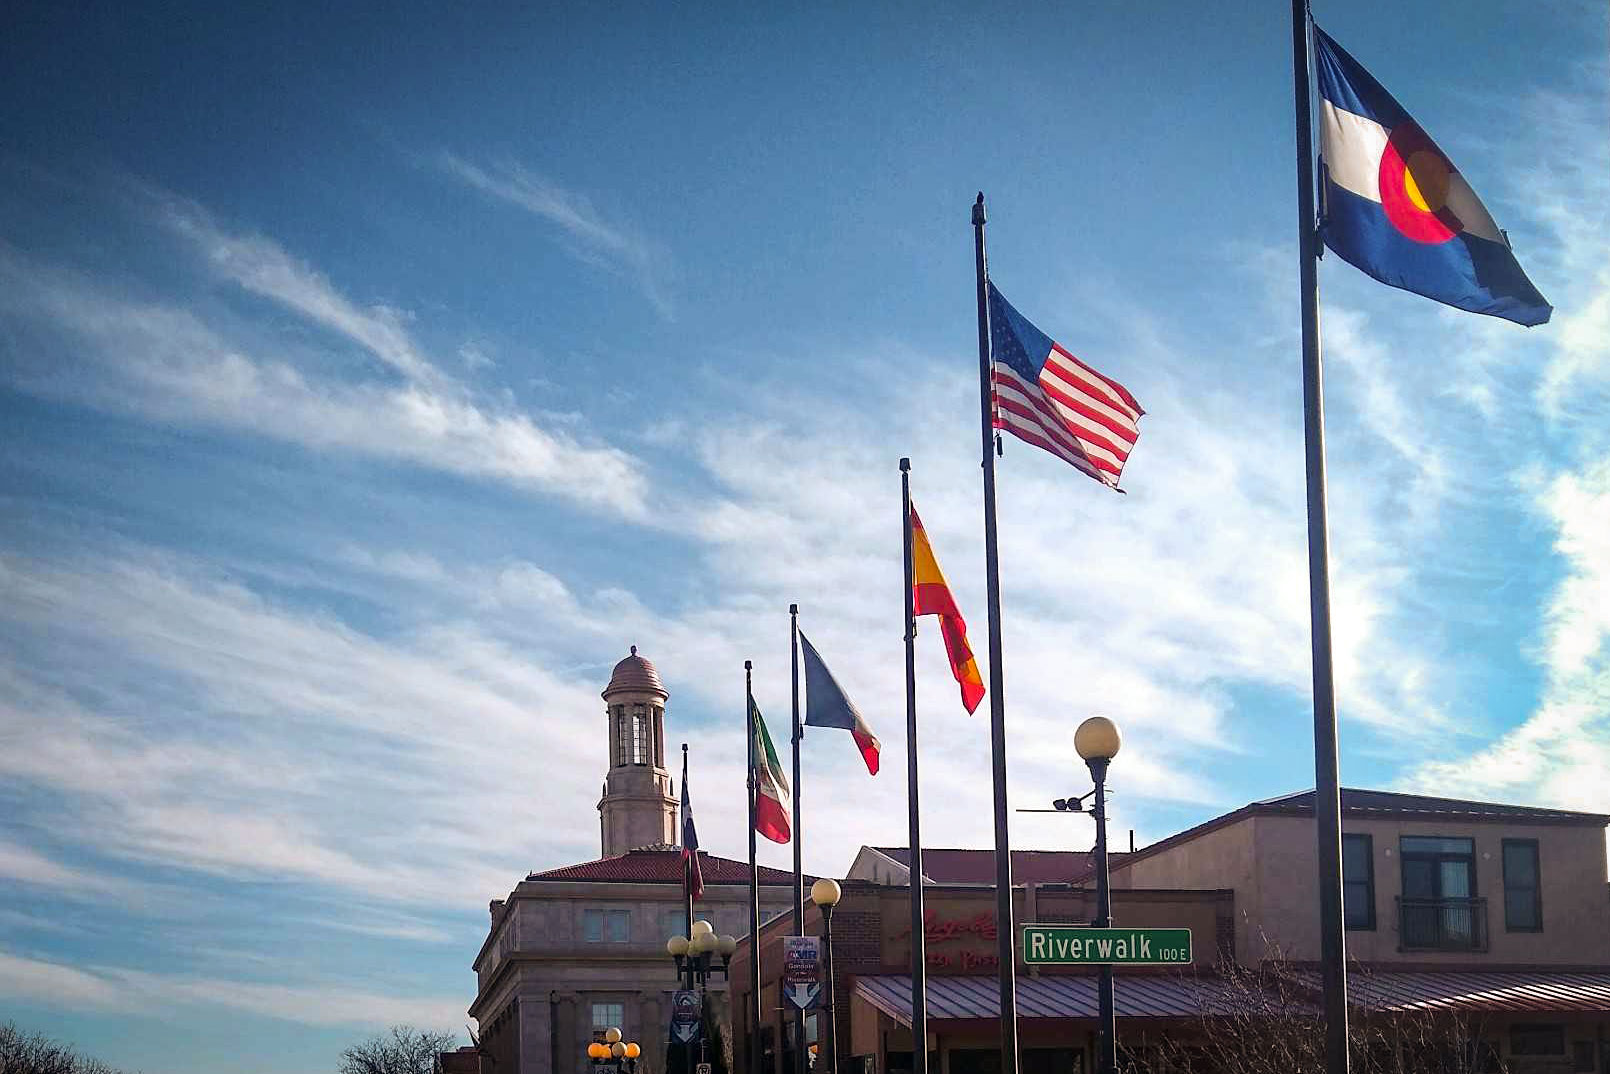 Some of the flags that fly along the Union Avenue Bridge that crosses over the Historic Arkansas Riverwalk in Pueblo, Colorado, March 16, 2020.